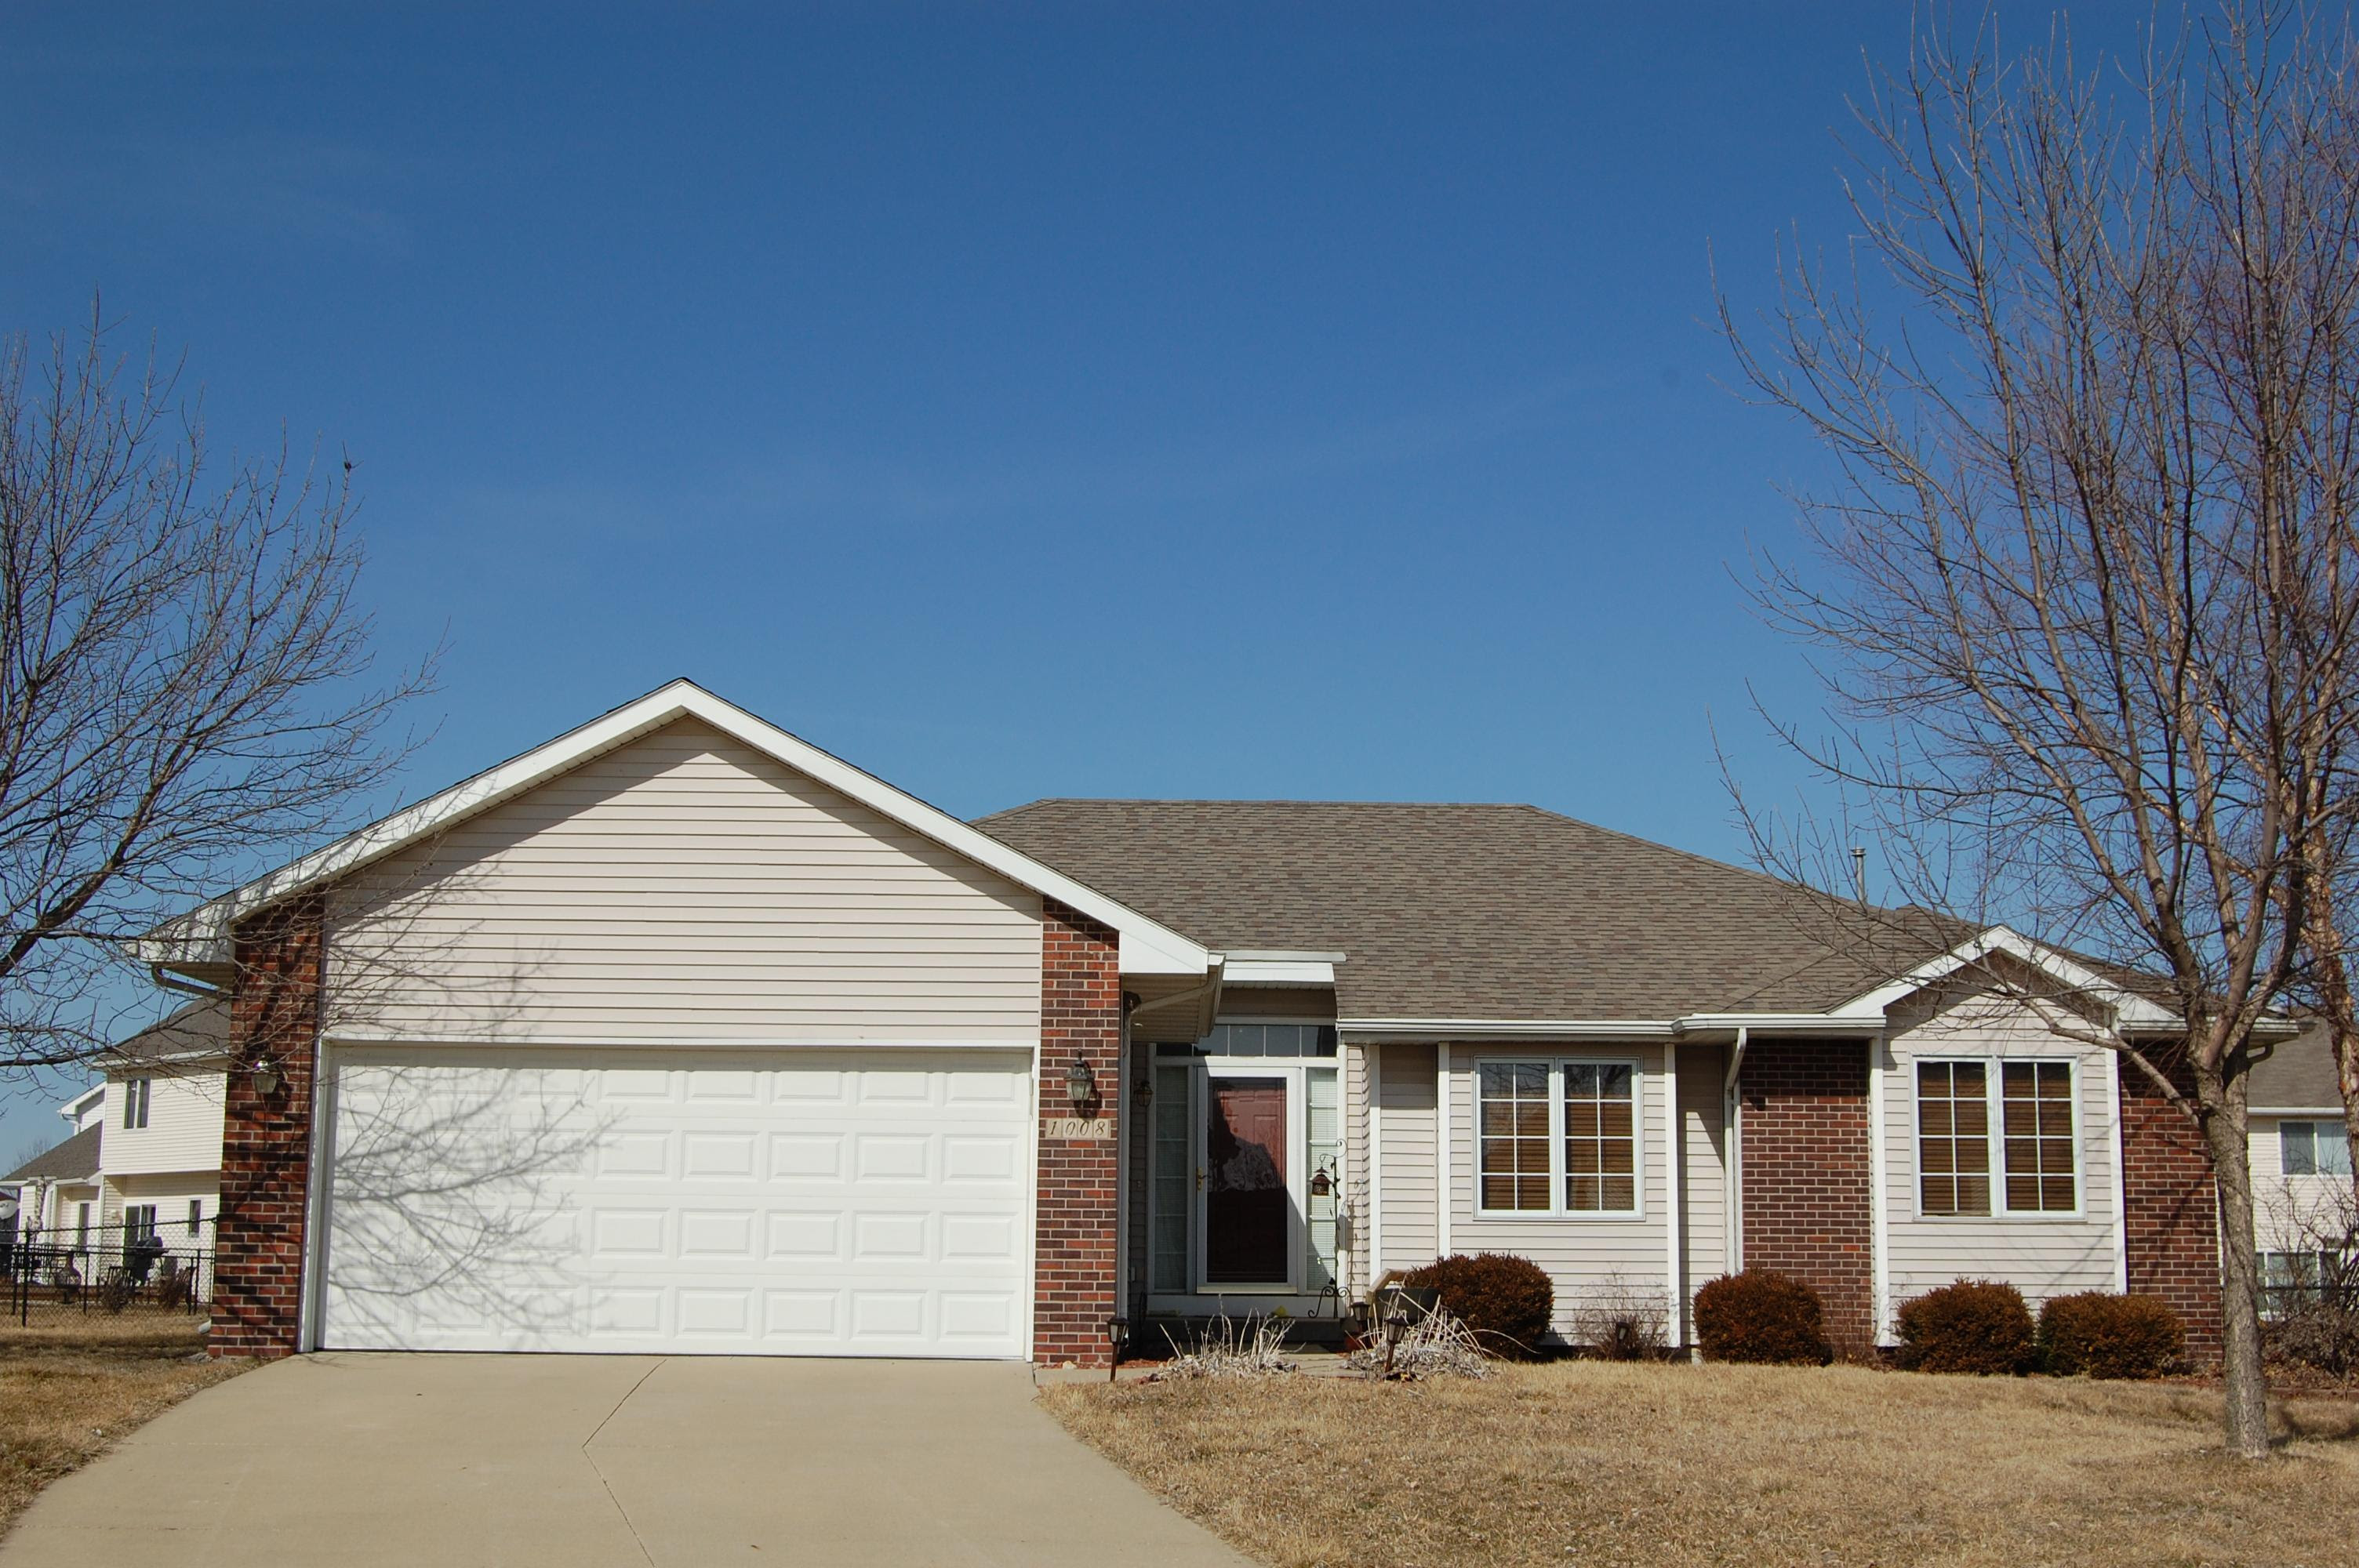 Ankeny, Iowa IA FSBO Homes For Sale, Ankeny By Owner FSBO, Ankeny, Iowa ForSaleByOwner Houses